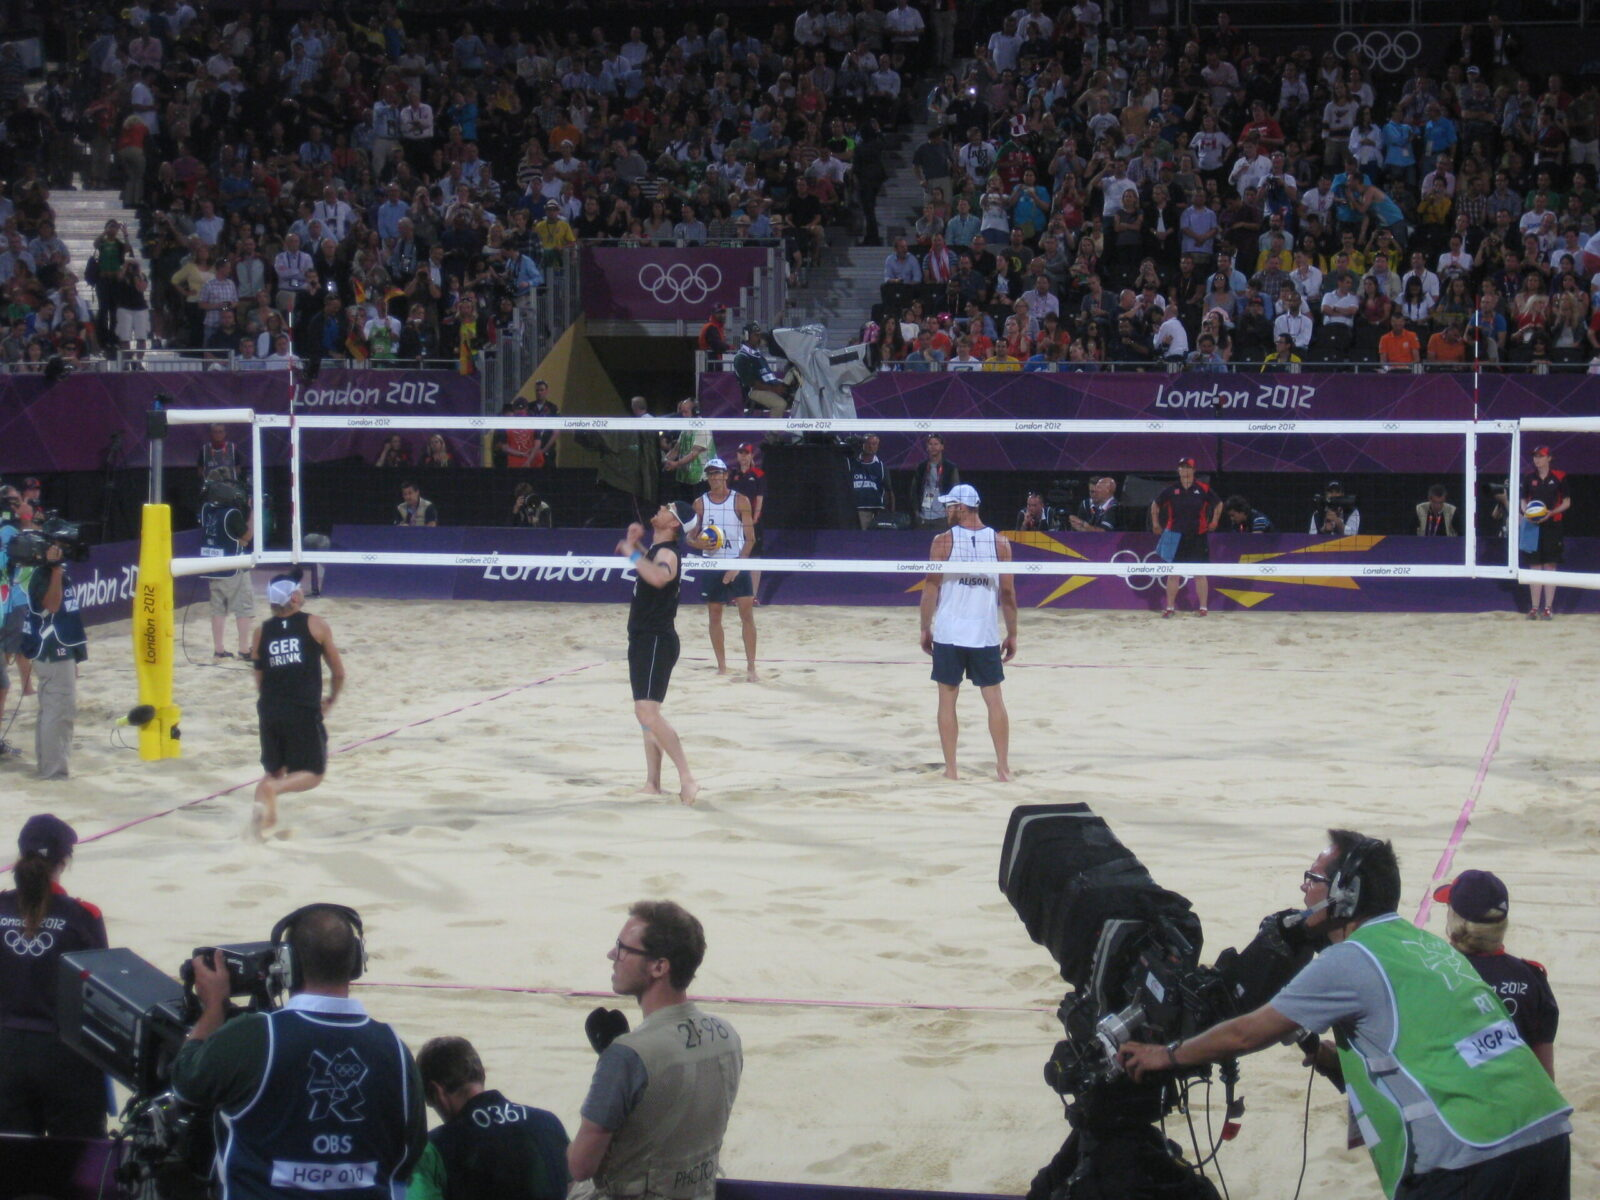 London (2012) Beach Volleyball Final at Horse Guards Parade: Germany vs Brazil.